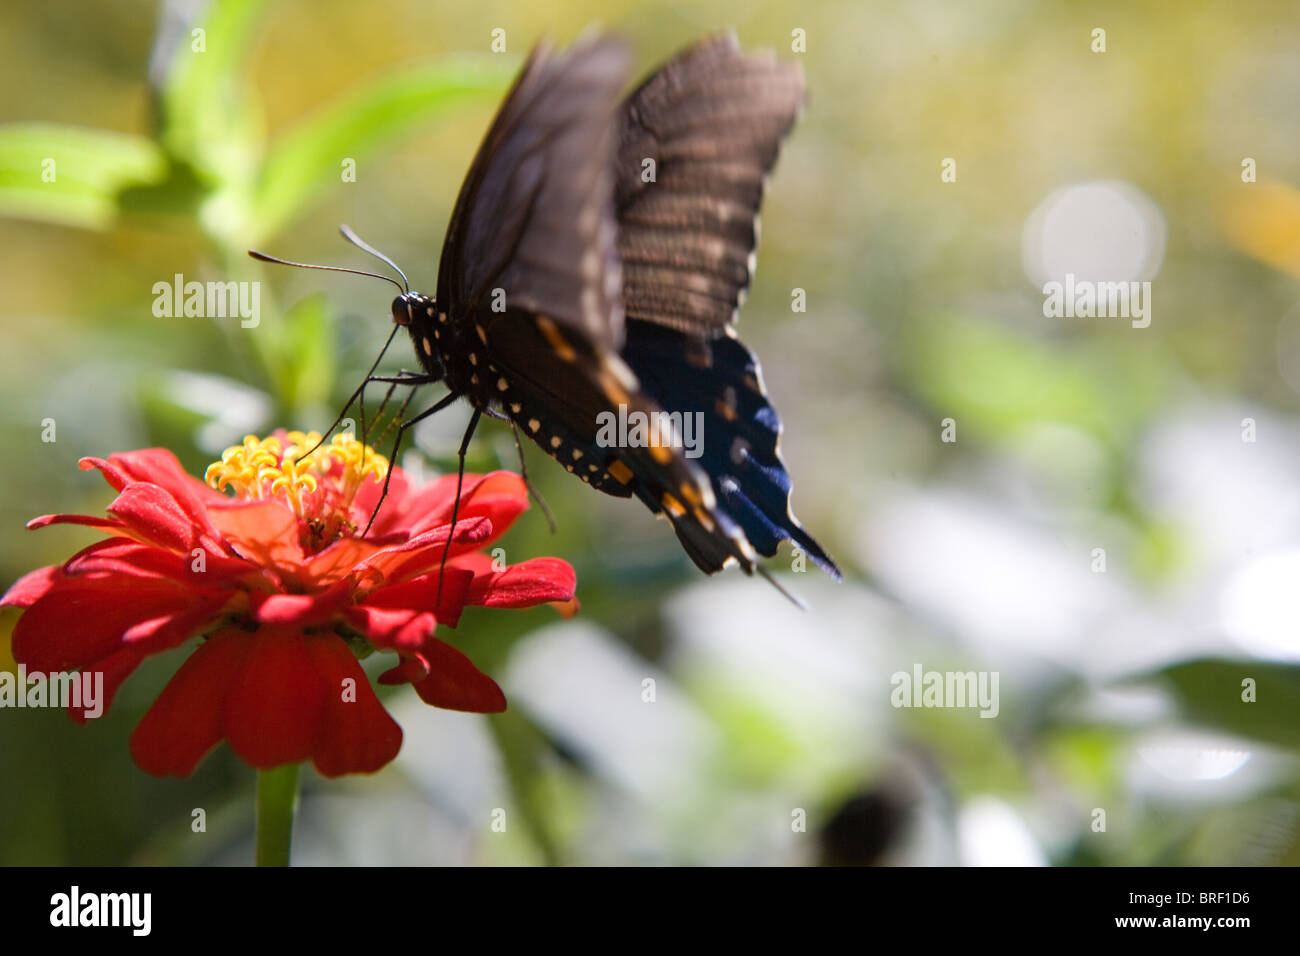 butterfly resting on a zinnia flower eating, black with orange and blue markings, landing - Stock Image